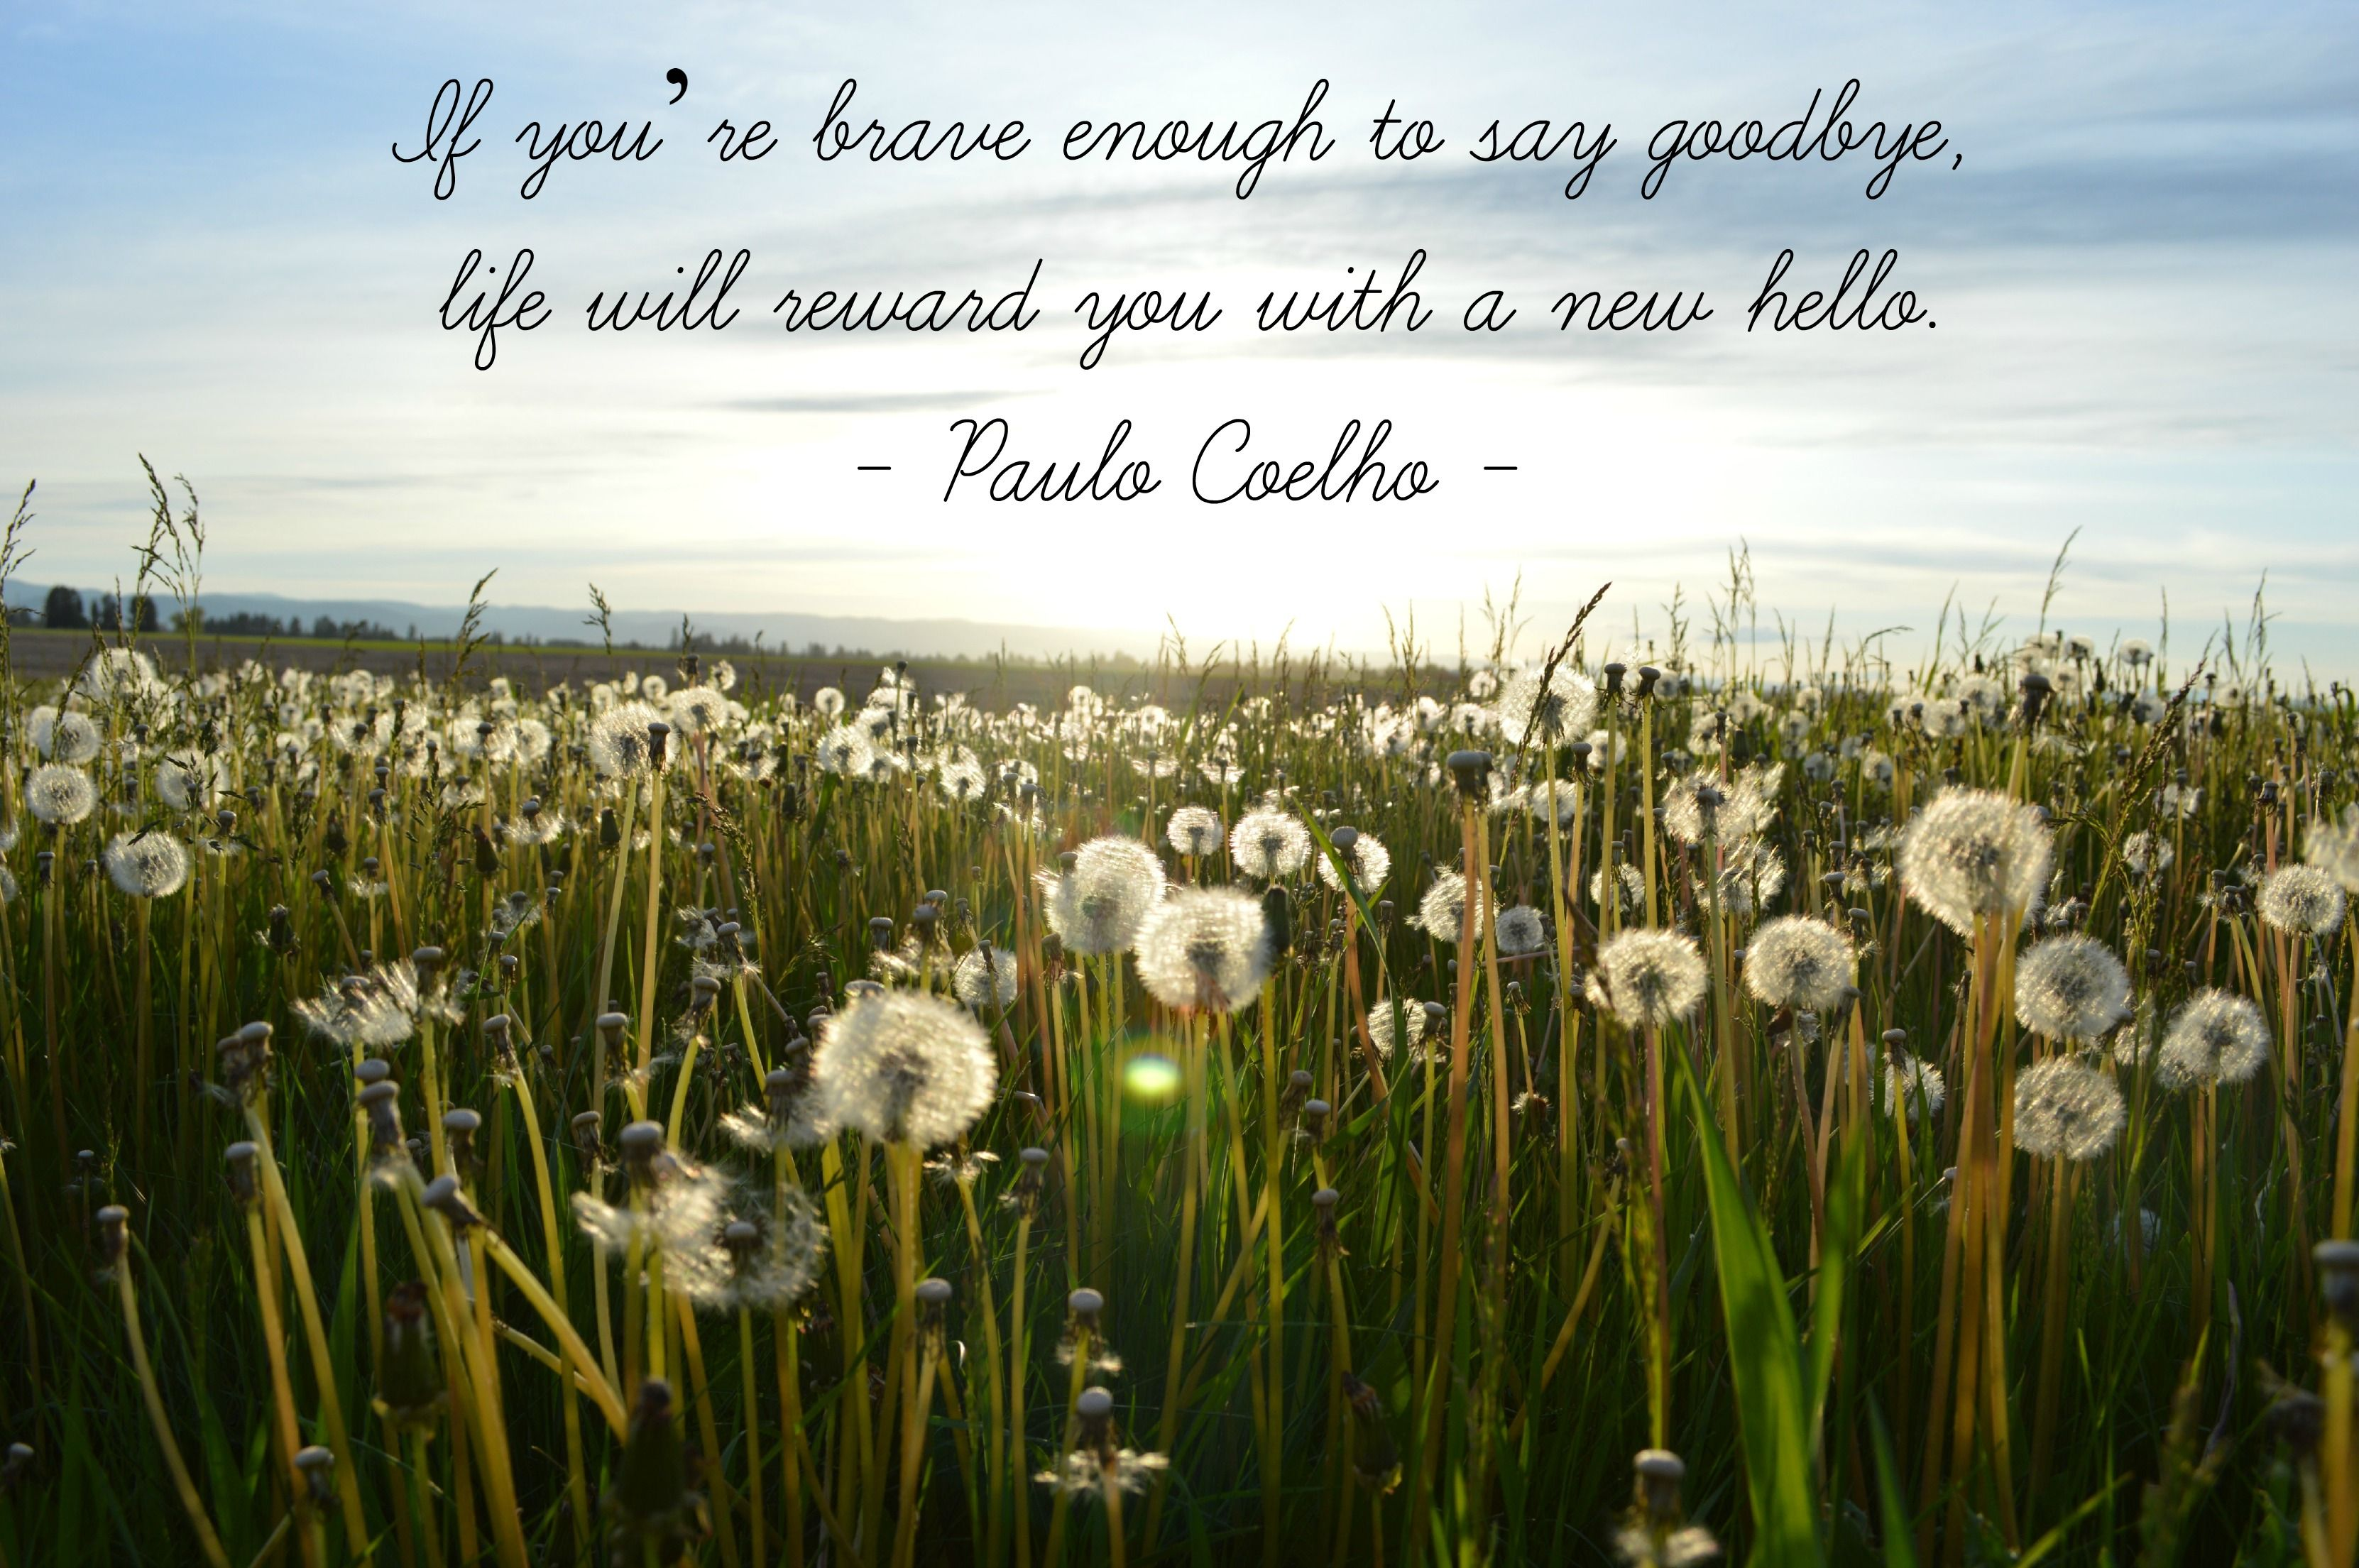 Quotes About Life Lessons And Moving On Dandelions Quote Brave Enough Say Goodbye Paulo Coelho Job Ends